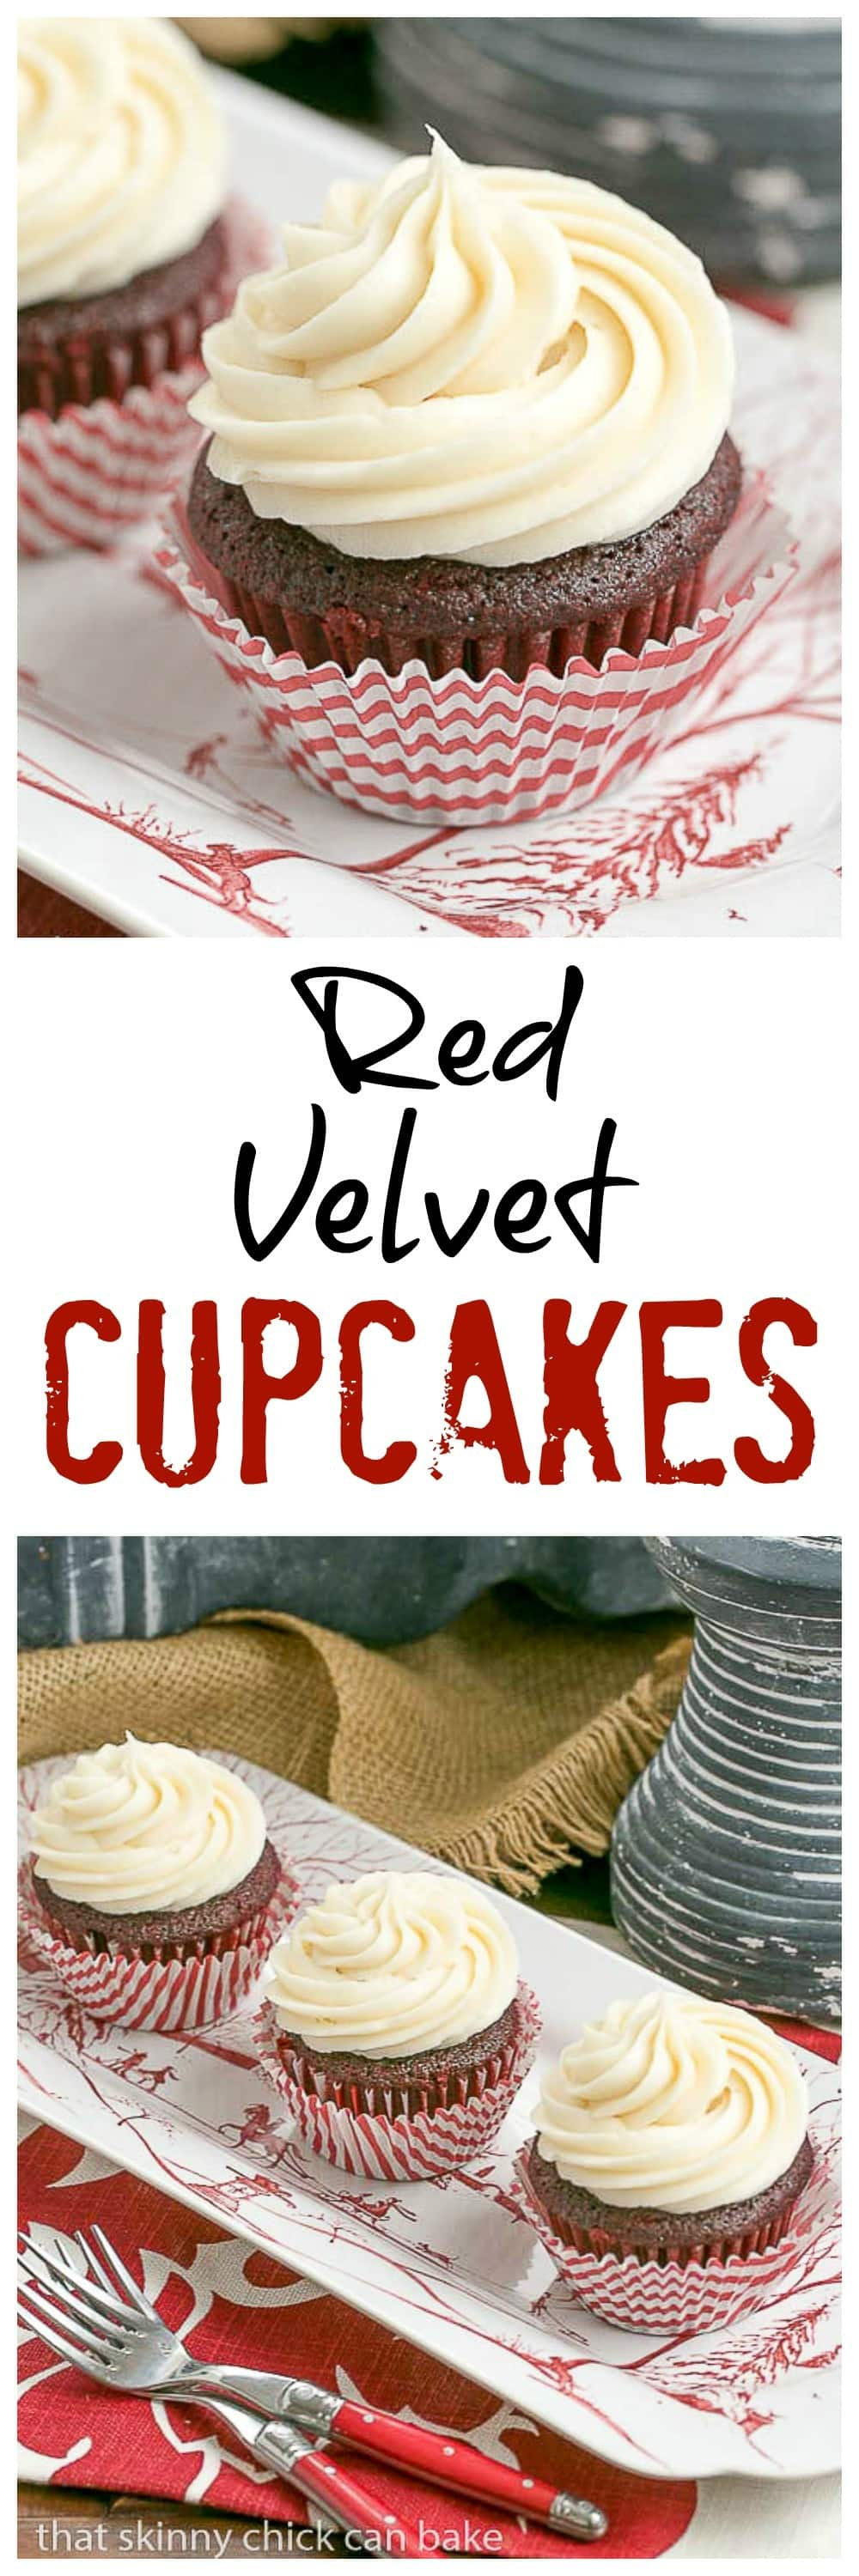 Red Velvet Cupcakes - The quintessential red velvet cupcakes made with buttermilk and a splash of of vinegar with a to die for cream cheese icing! #redvelvet #cupcakerecipe #creamcheesefrosting #redvelvetcupcakes